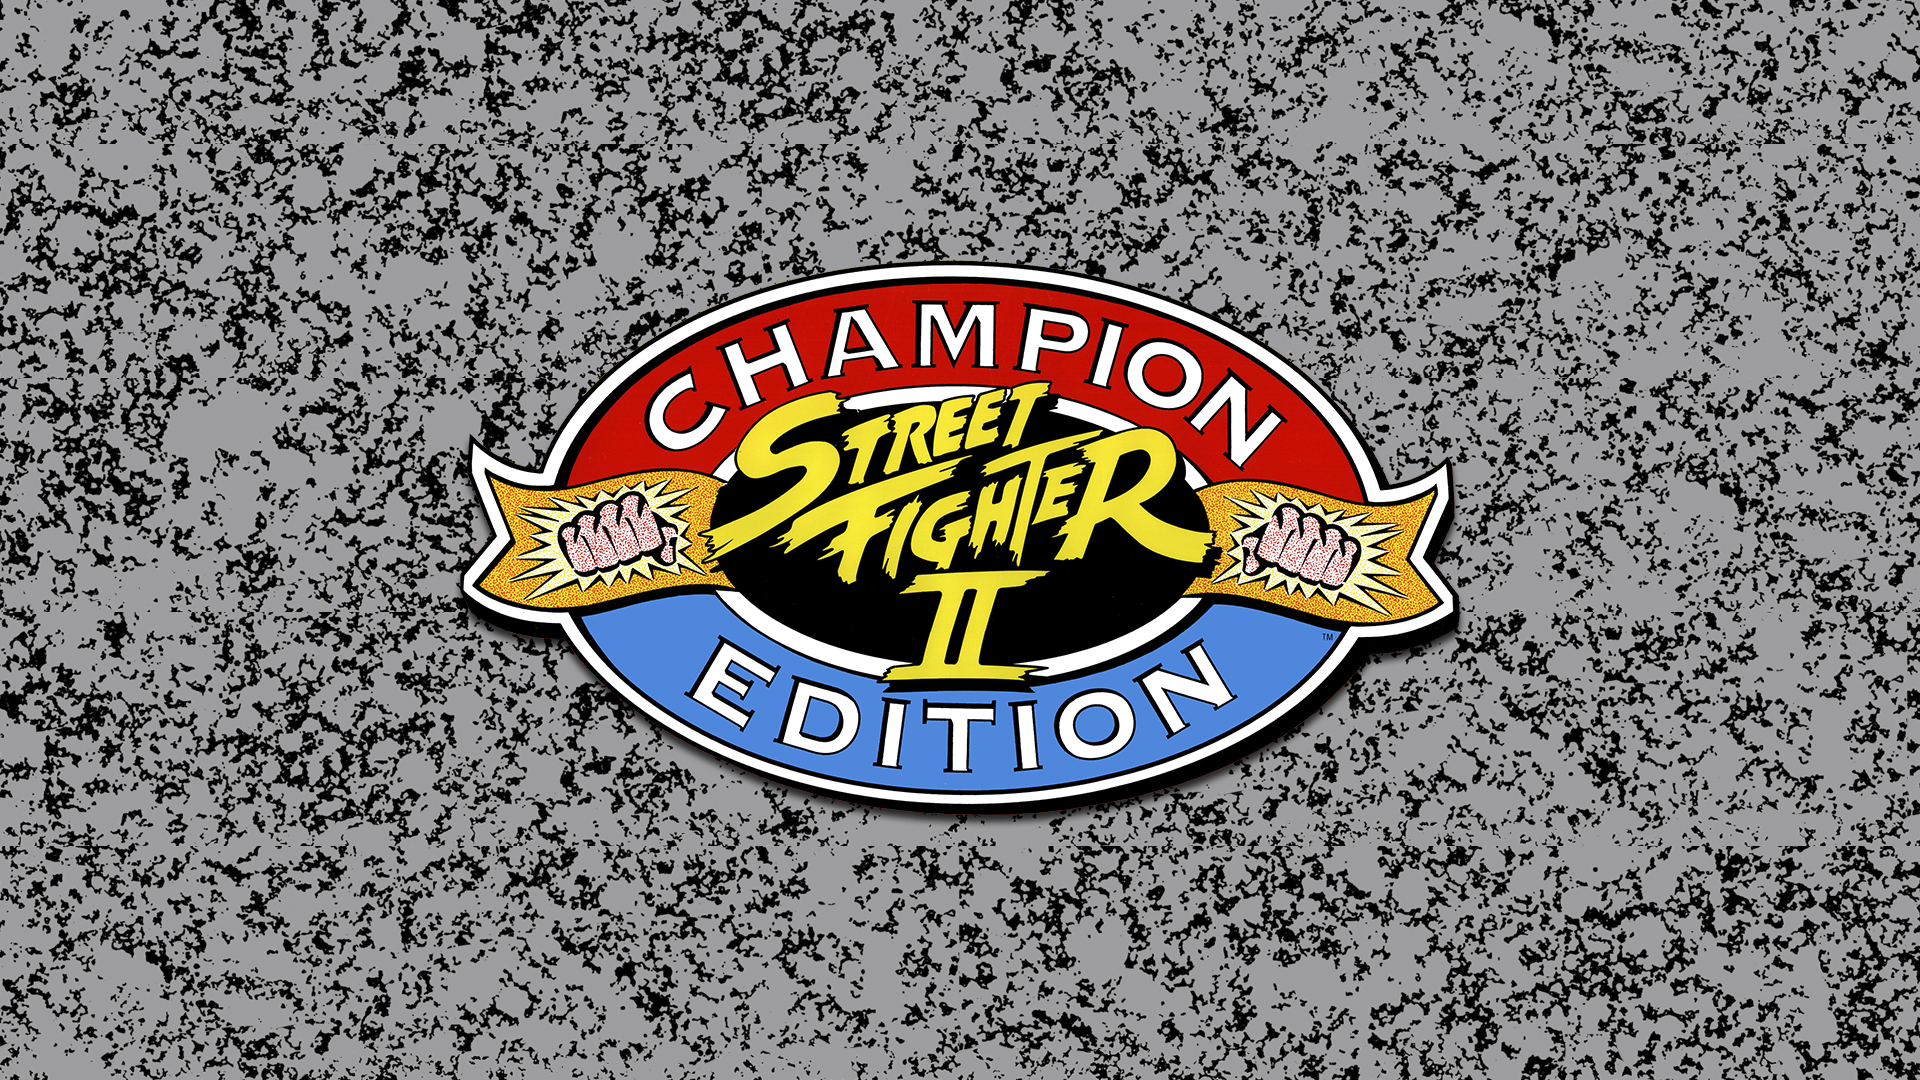 Street Fighter Ii Champion Edition Details Launchbox Games